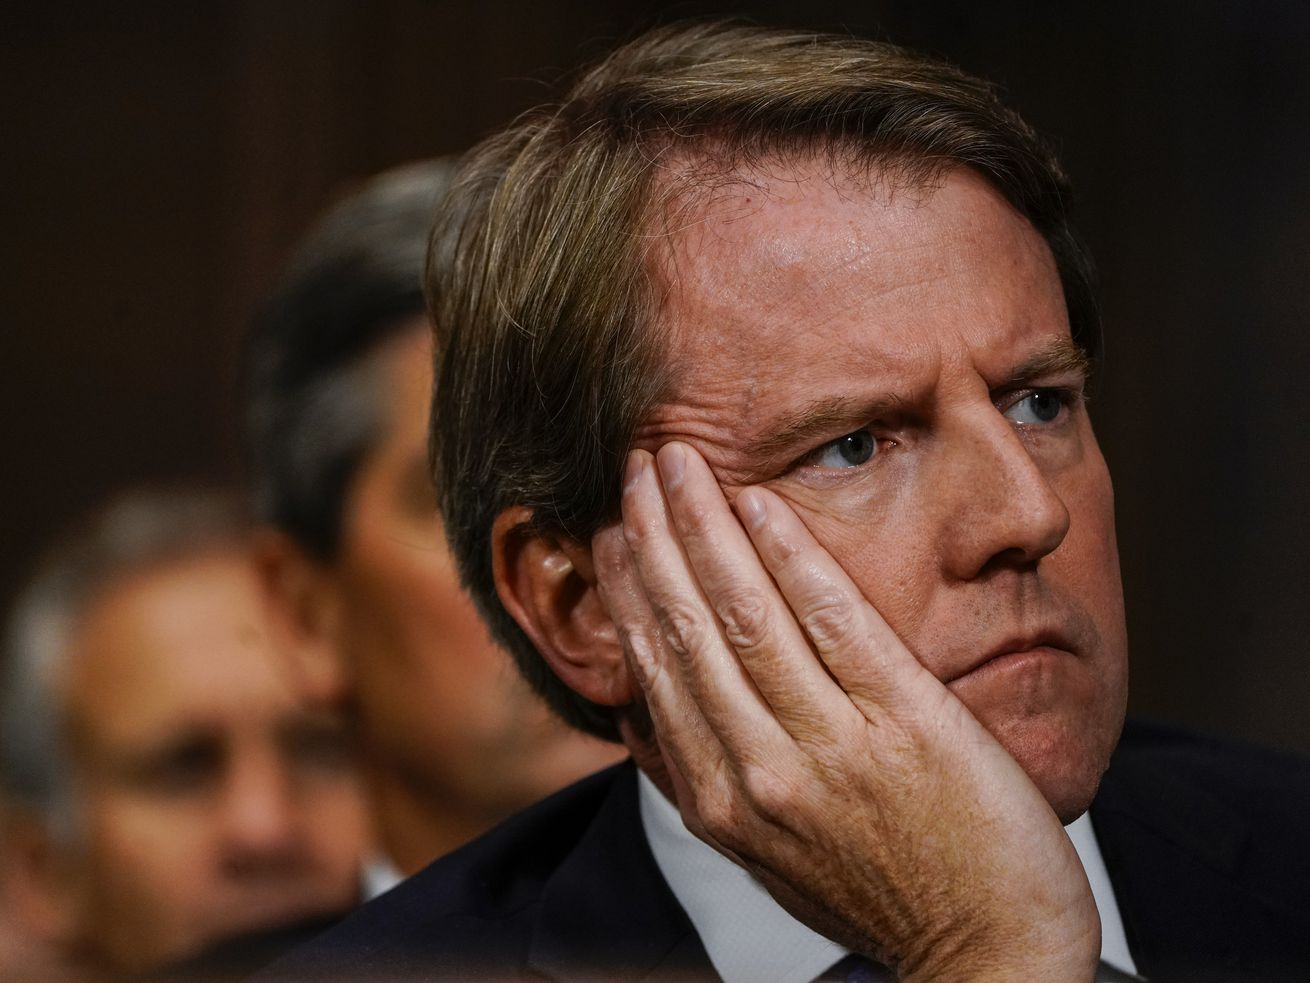 Don McGahn during the Kavanaugh hearings.